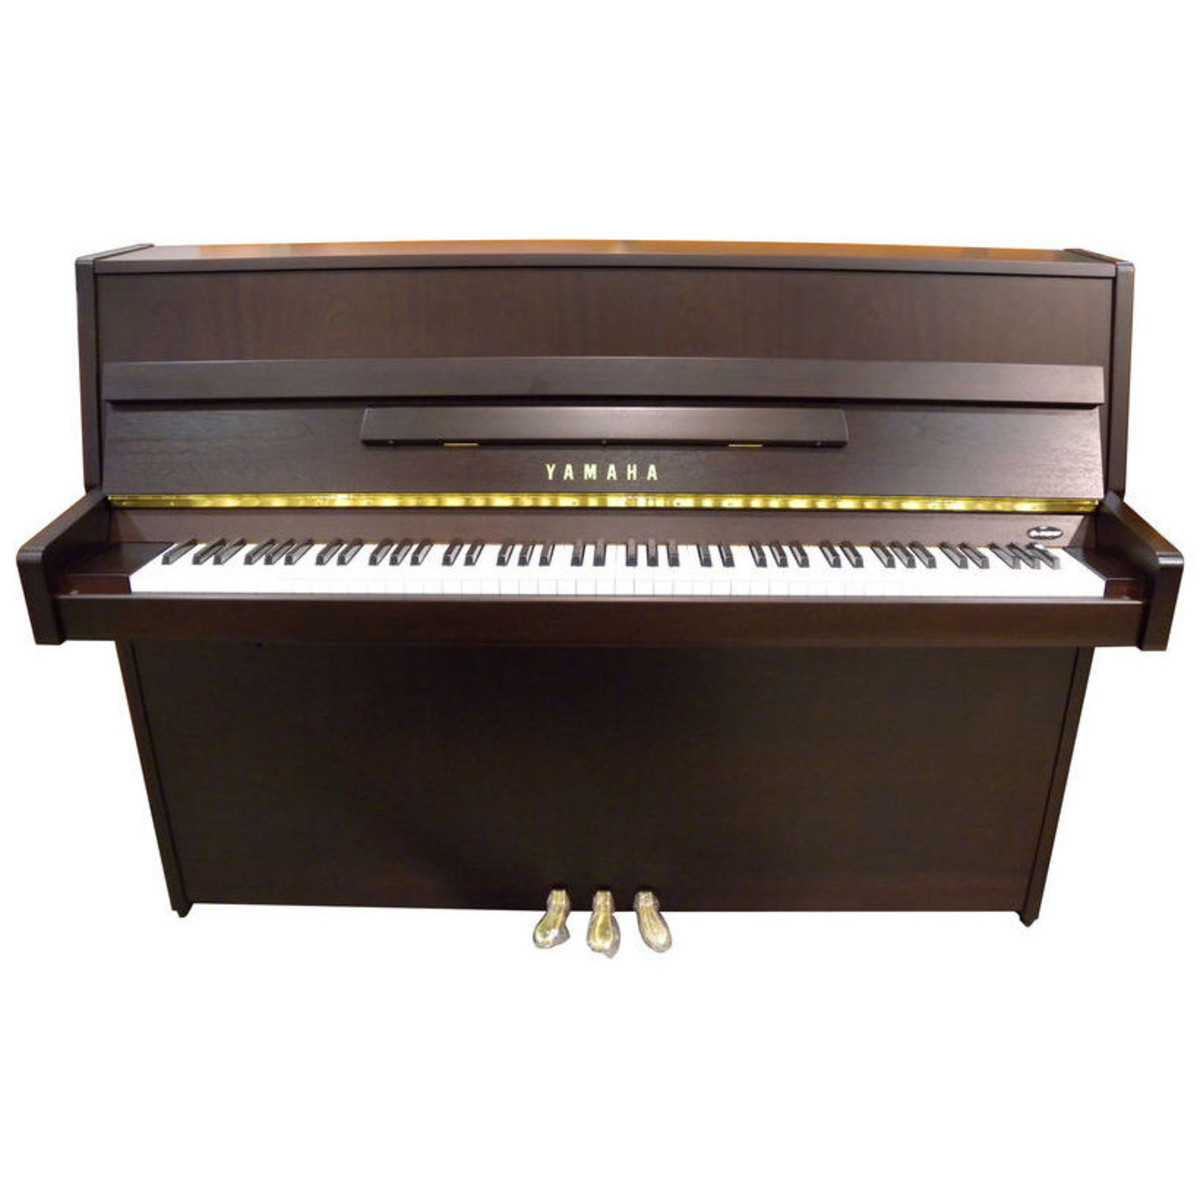 Yamaha b1 upright acoustic piano dark walnut satin at for Yamaha b1 piano price